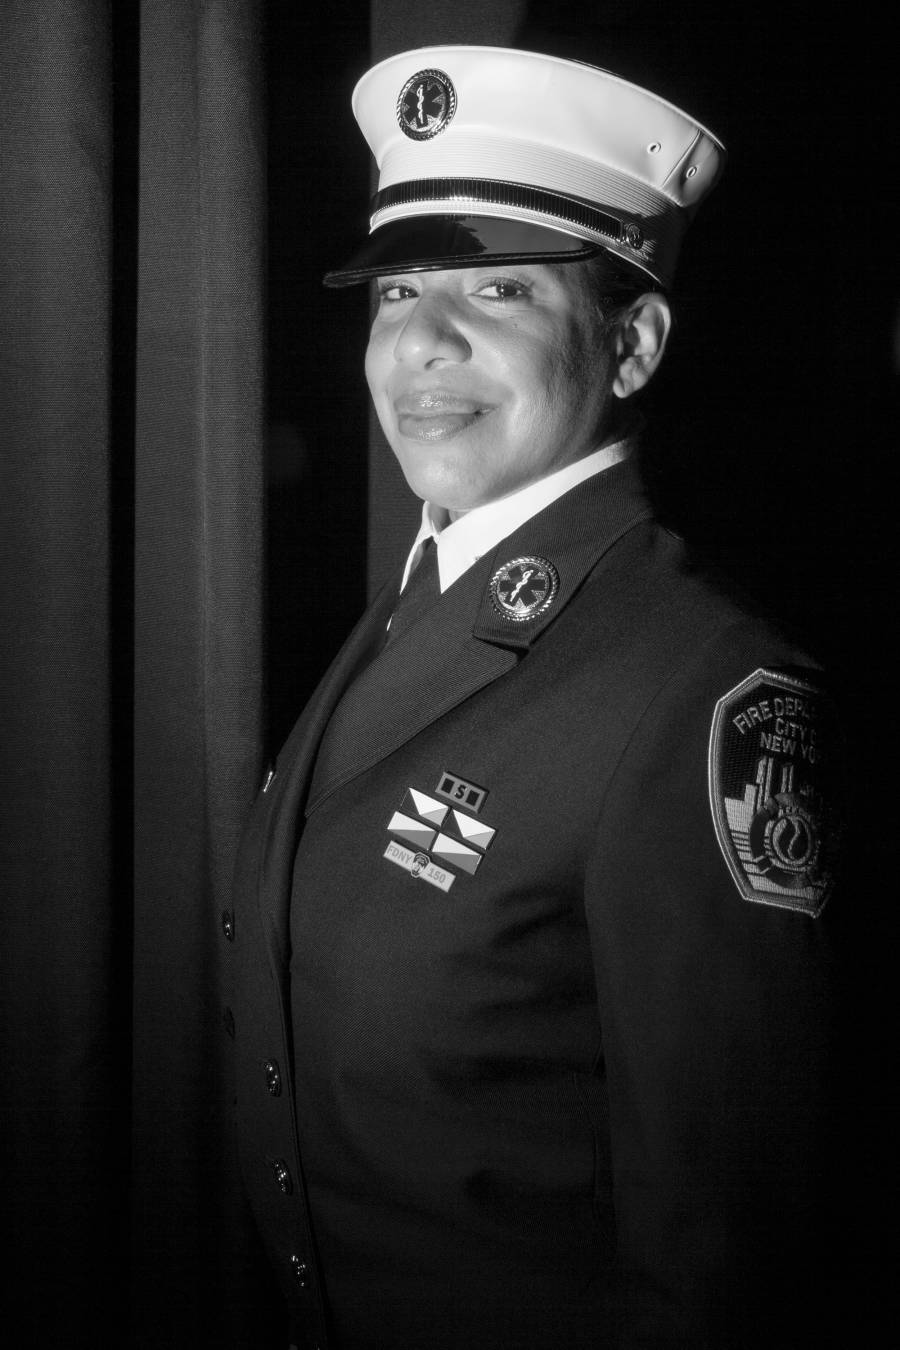 Lt-Juliette-Arroyo-Brooklyn-NYC-FDNY-2-Photo-Jen-Davis